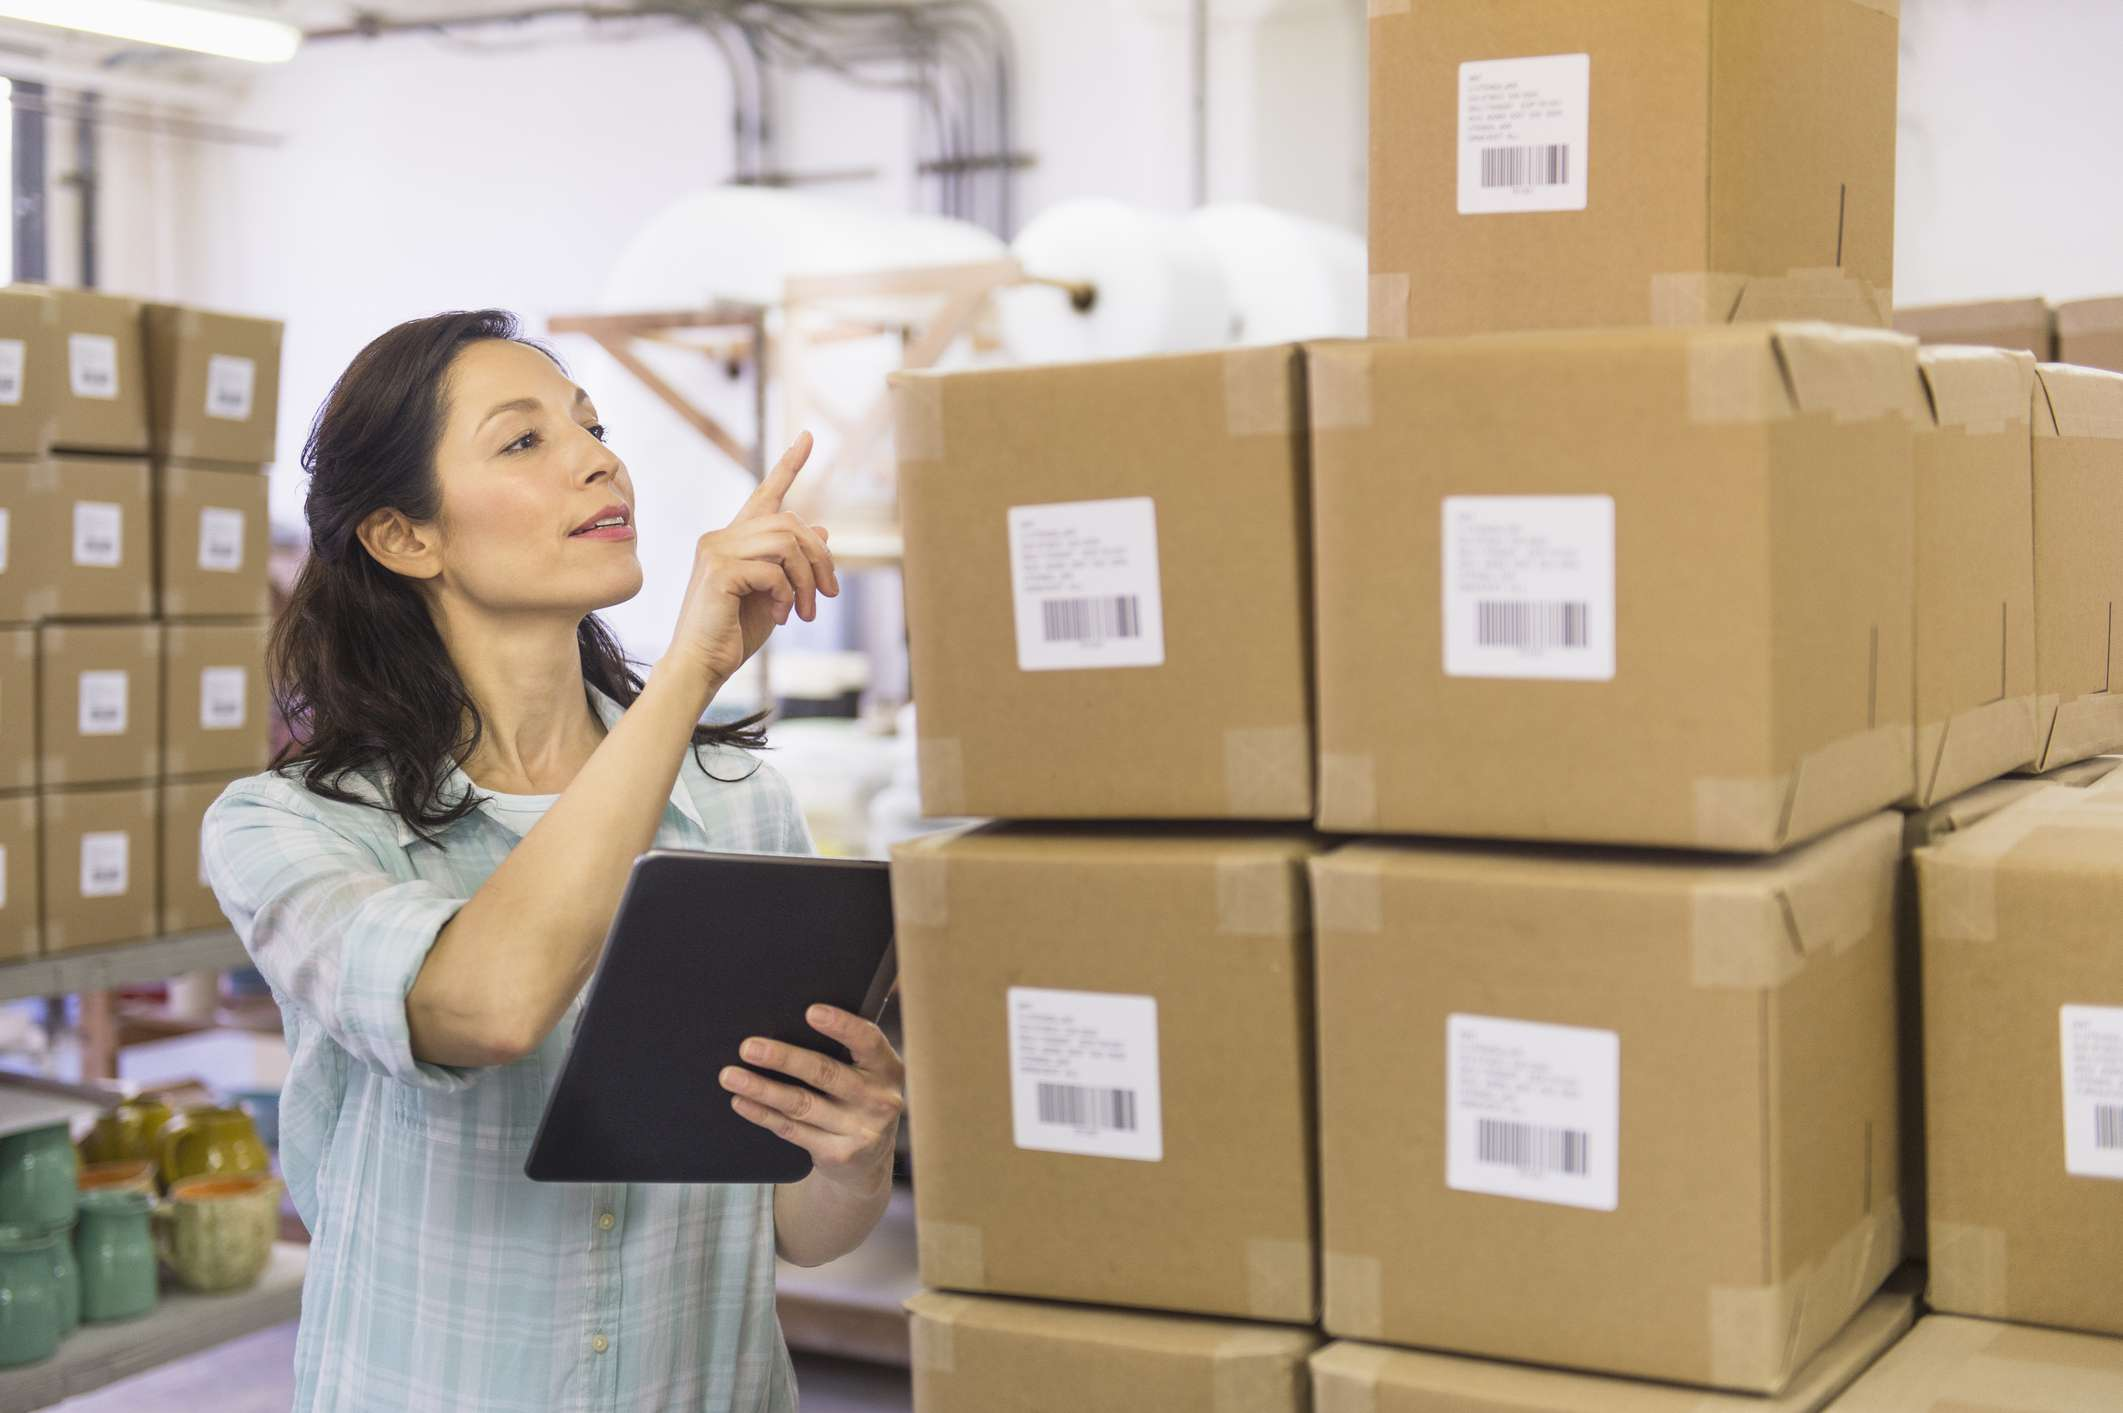 Woman counting boxes of inventory